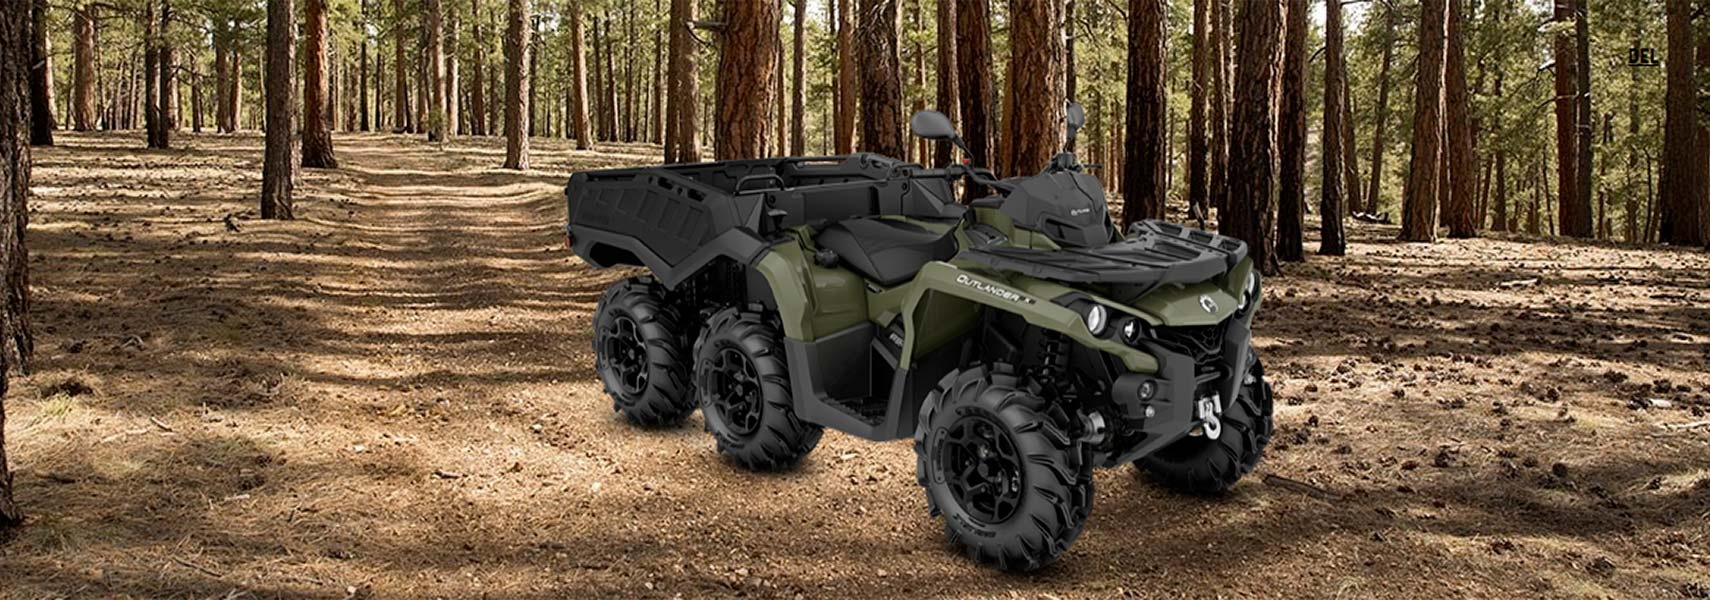 Can-Am ATV - 2020 OUTLANDER MAX 6X6 PRO+ 650 T